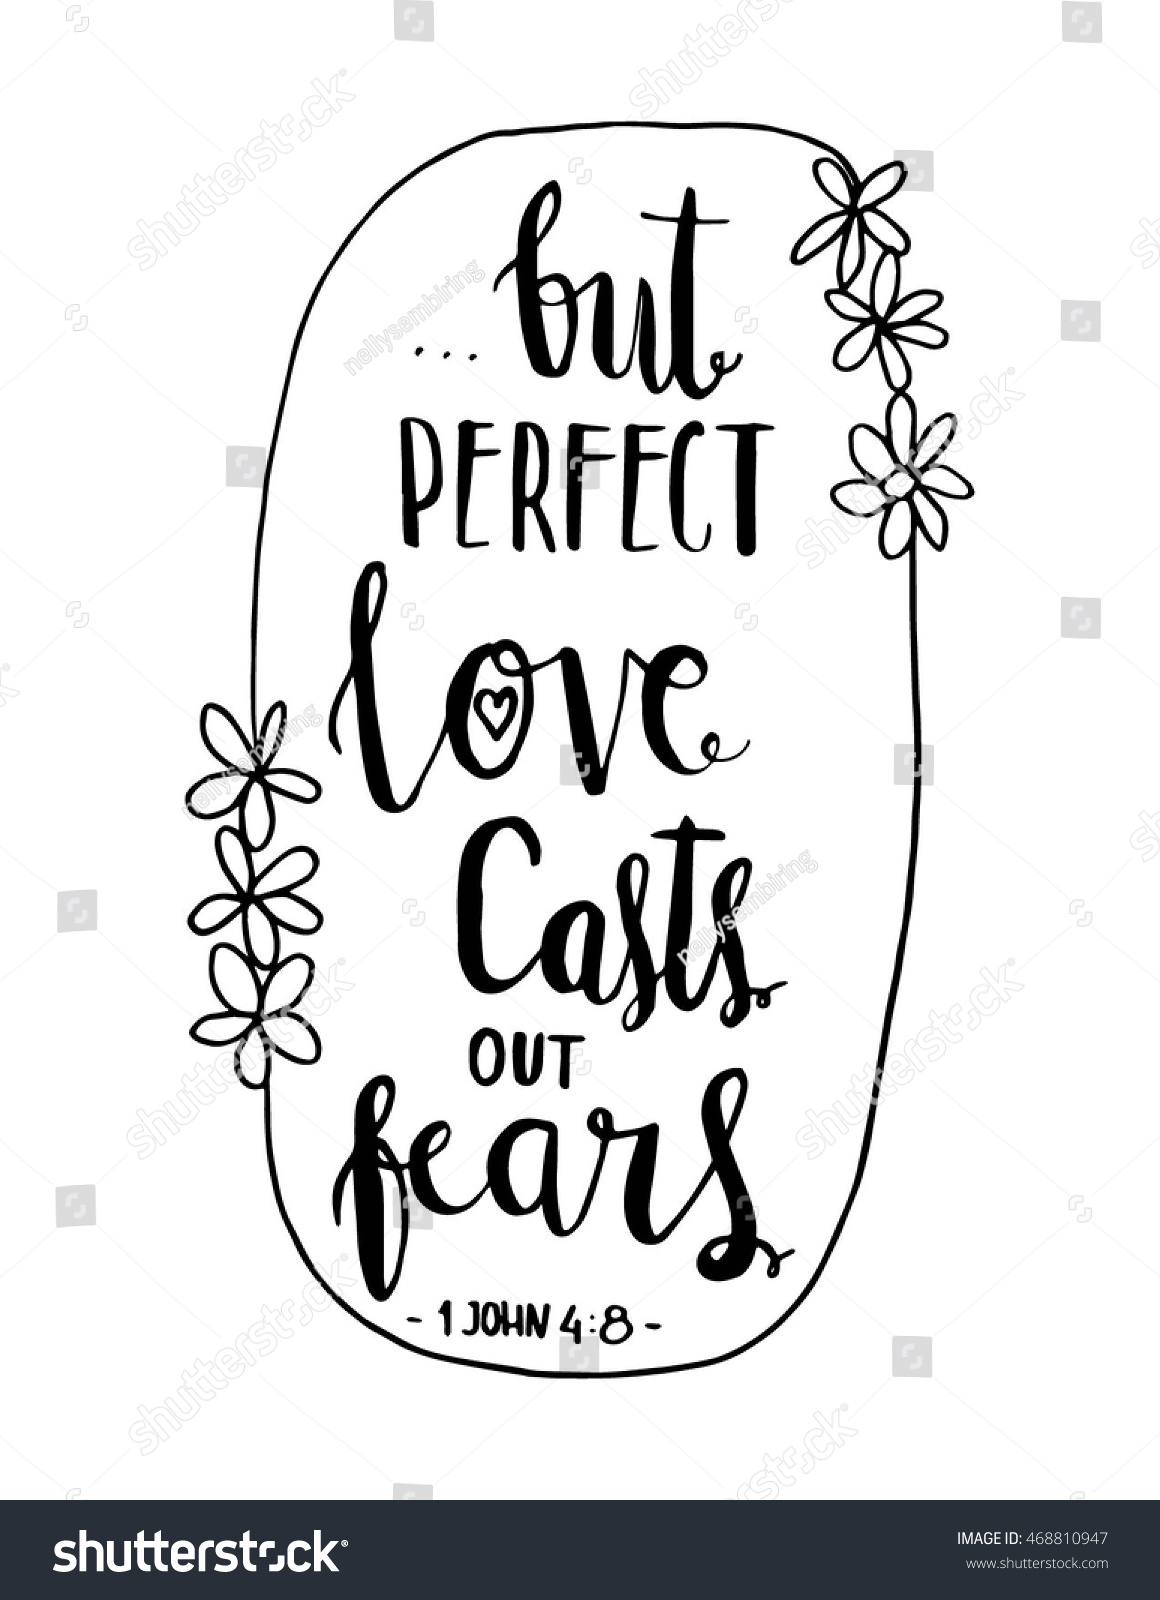 Perfect love cast out fears quote stock vector